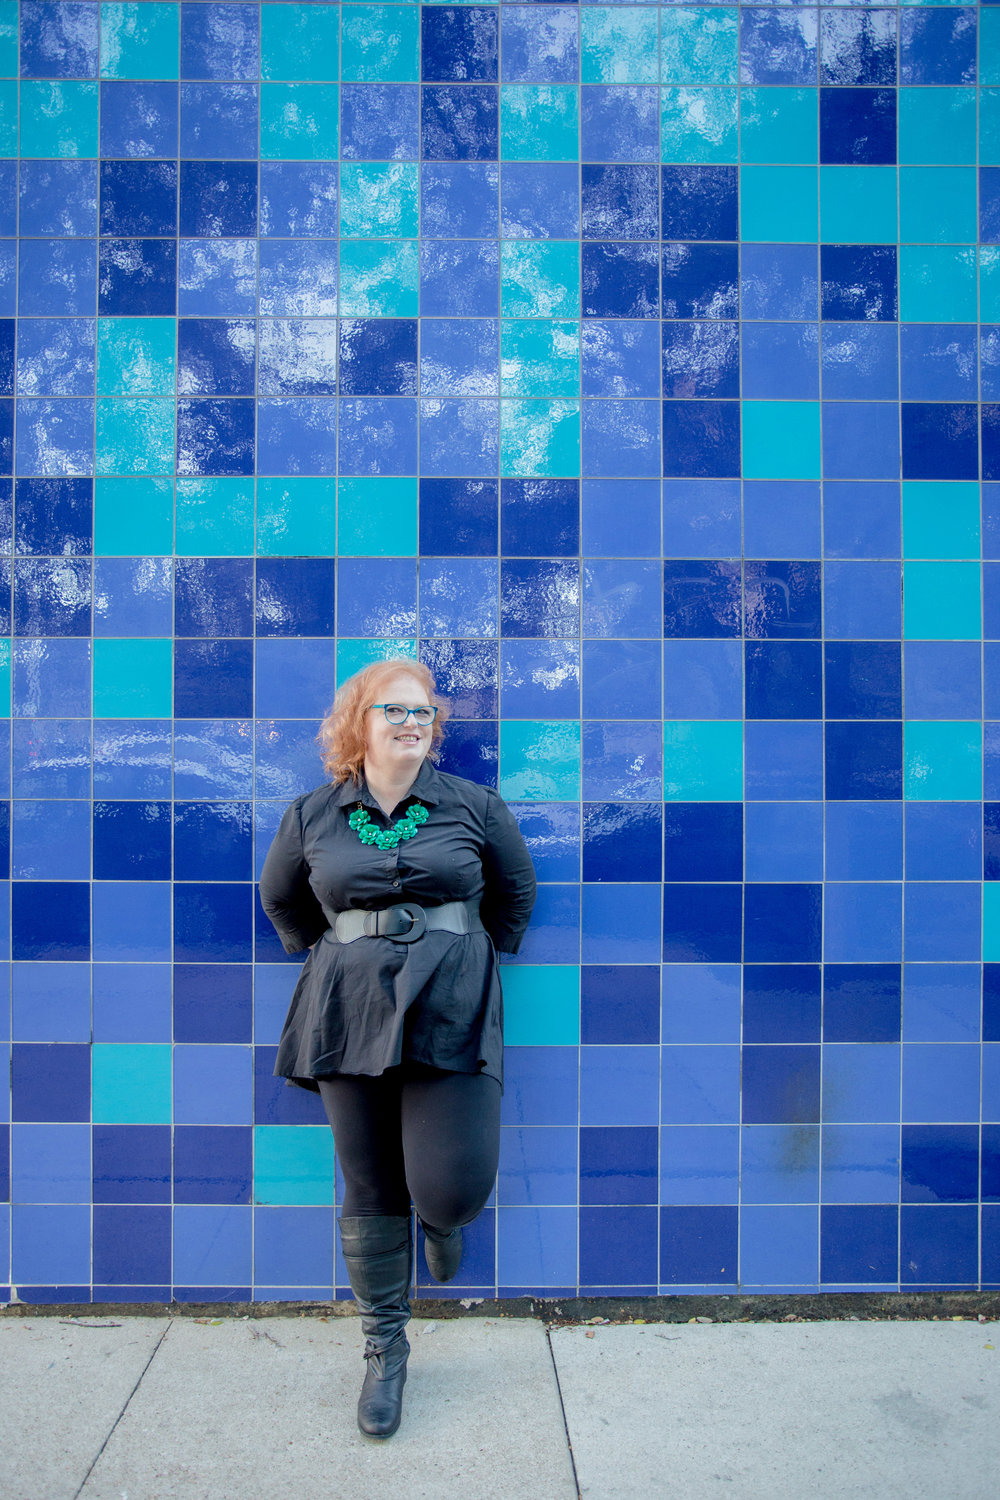 Portraits in Austin at the Blue Tiled Wall